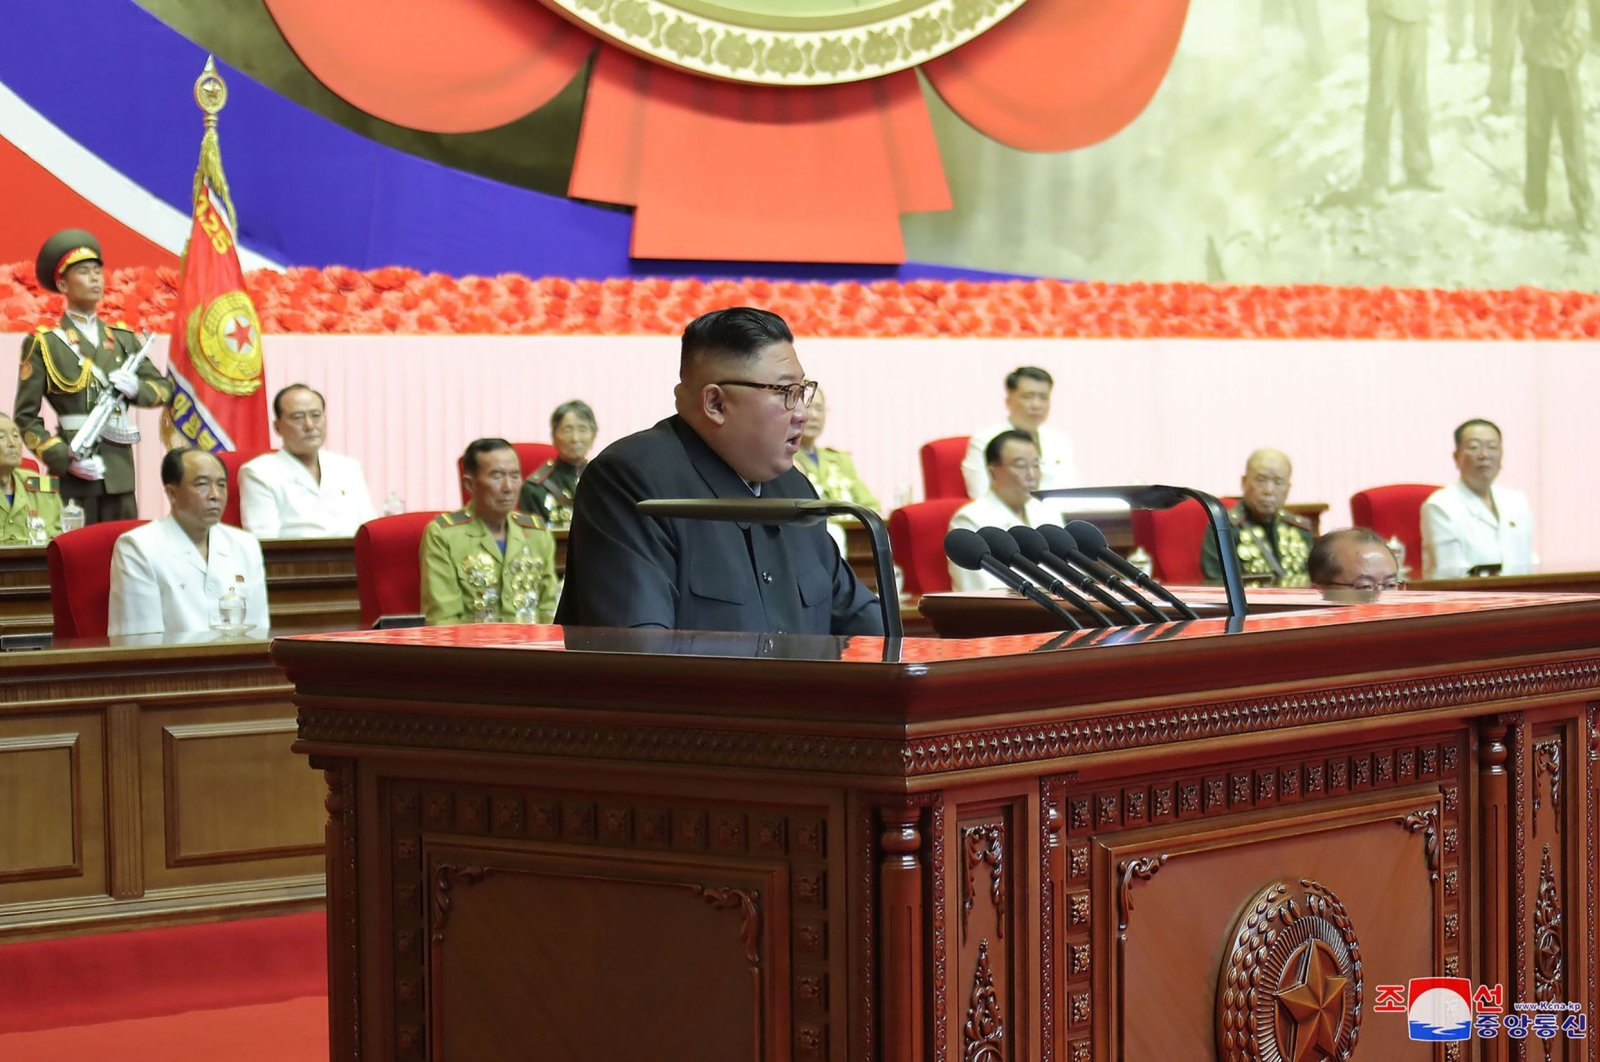 North Korean leader Kim Jong Un delivers a speech at the Sixth National Conference of War Veterans at the April 25 House of Culture, Pyongyang, July 28, 2020. (AFP Photo)